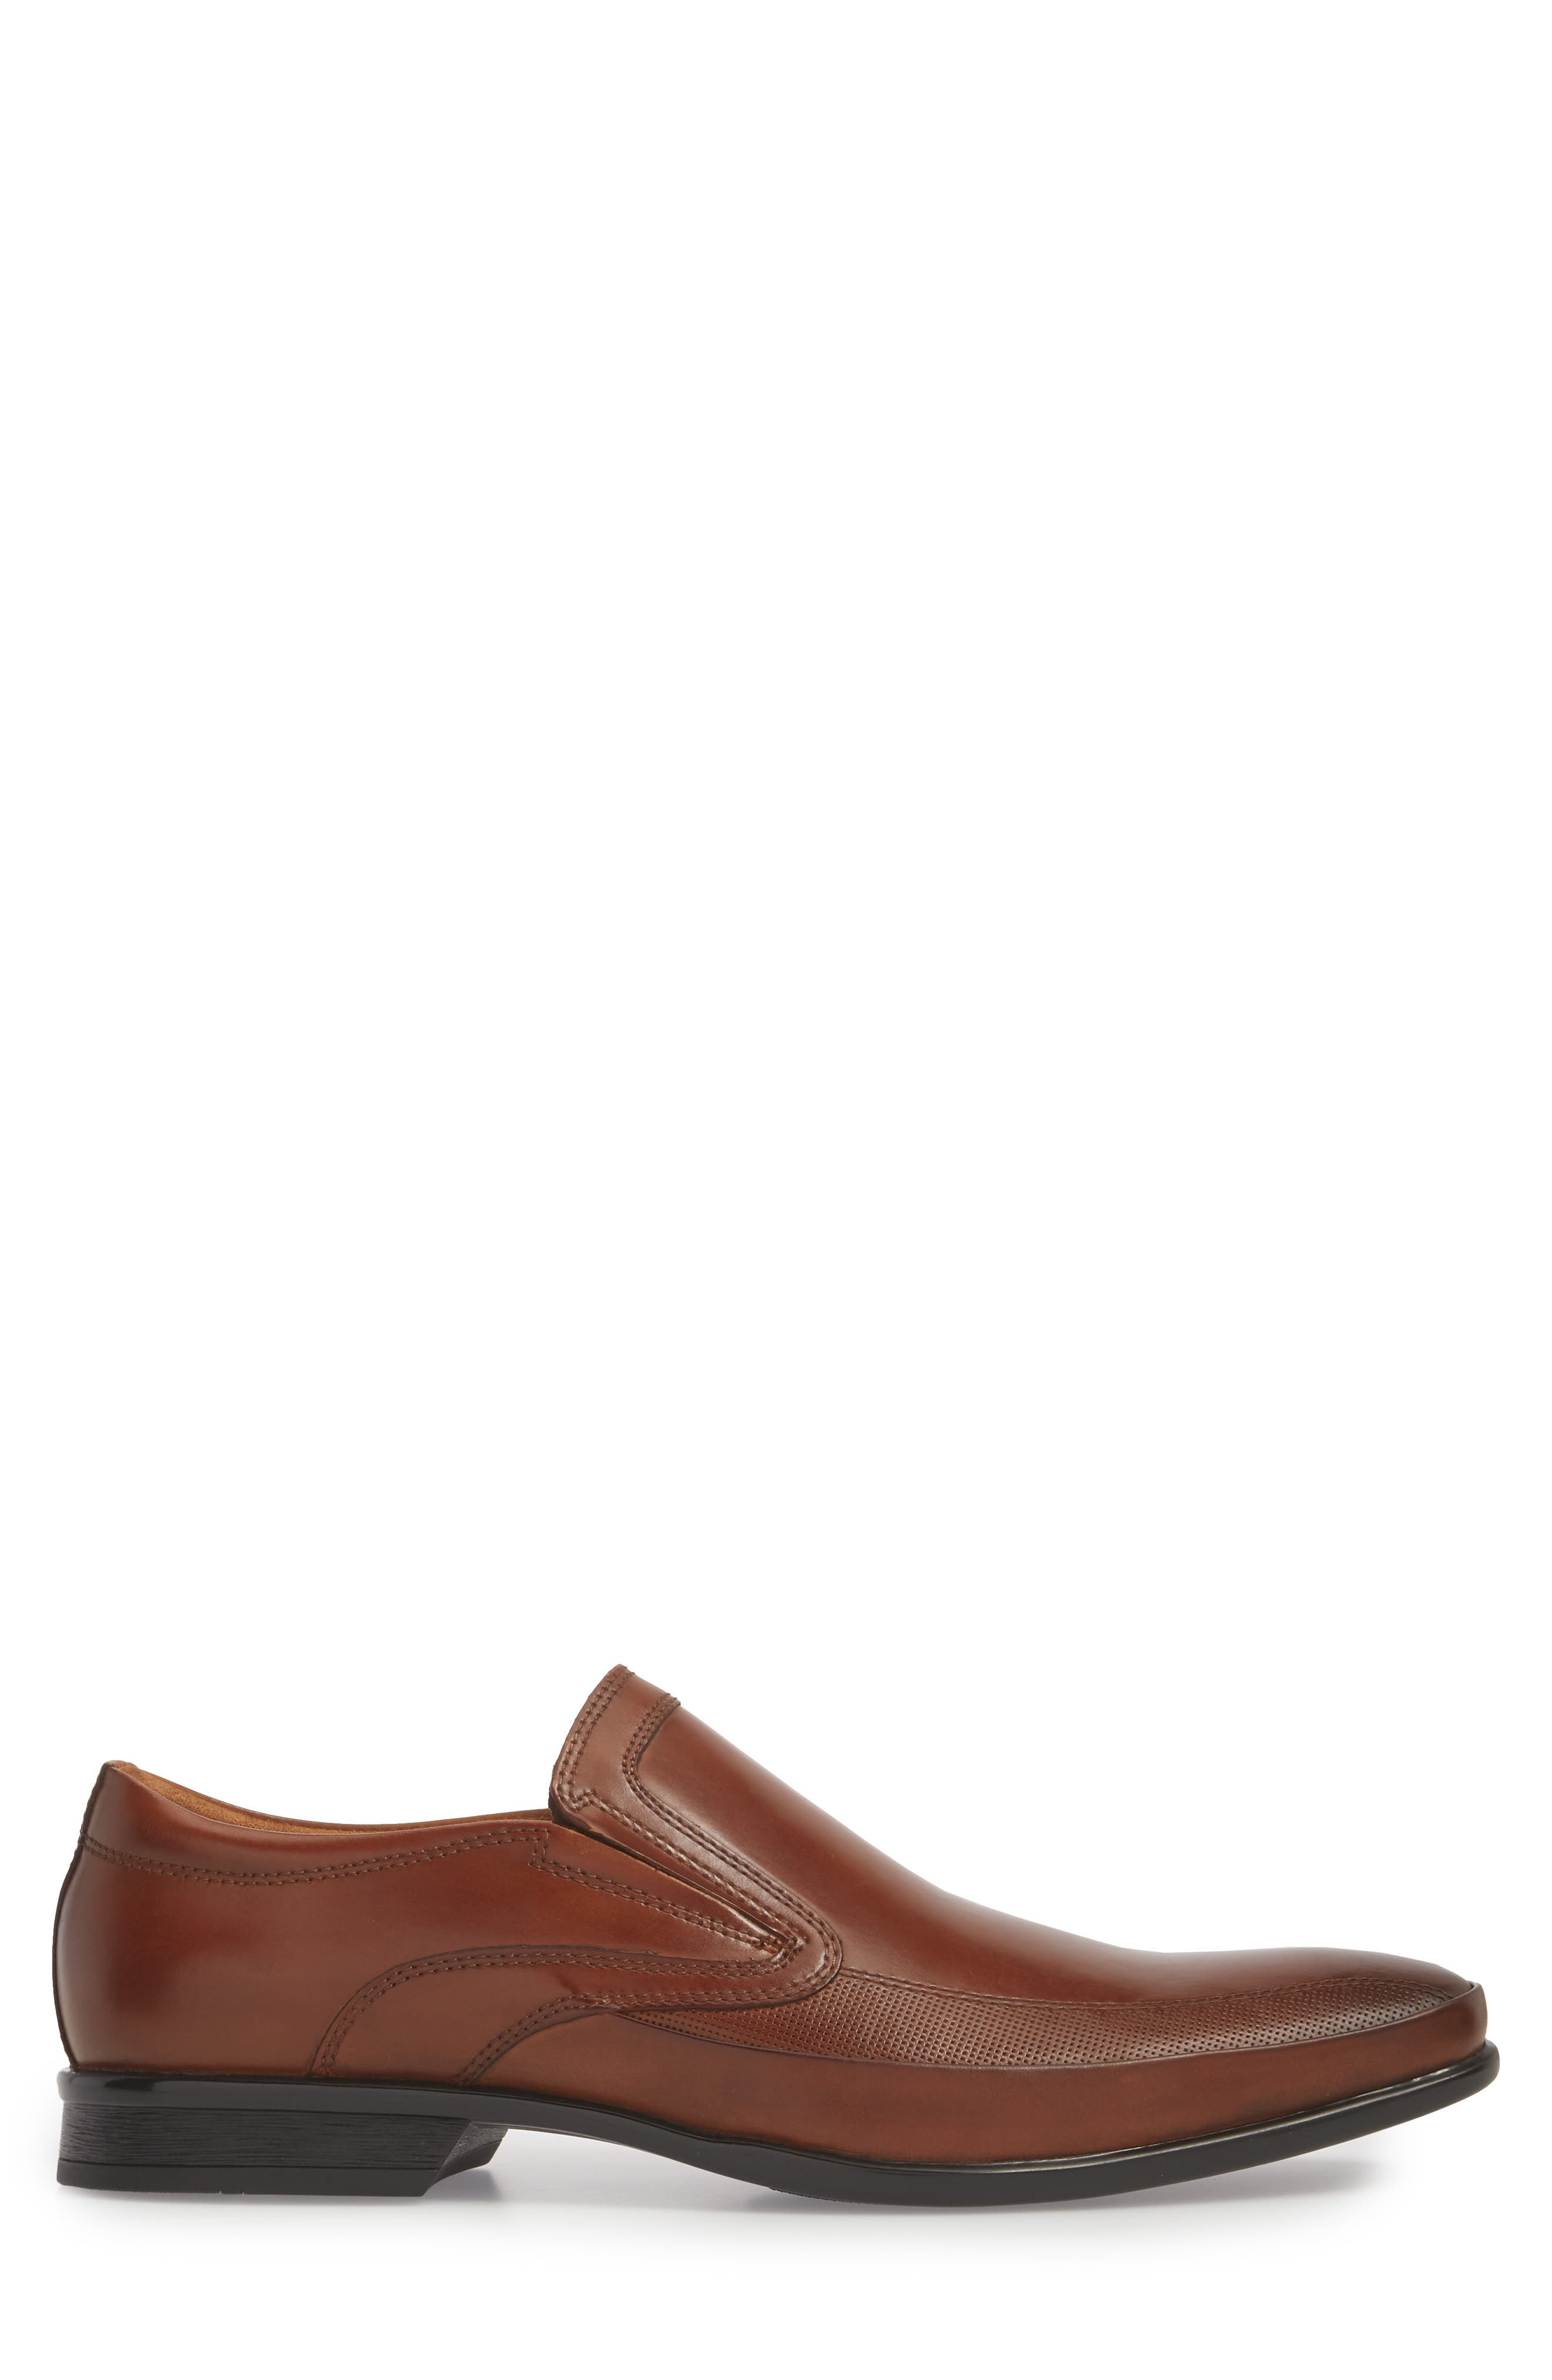 'Extra Official' Venetian Loafer,                             Alternate thumbnail 3, color,                             COGNAC LEATHER